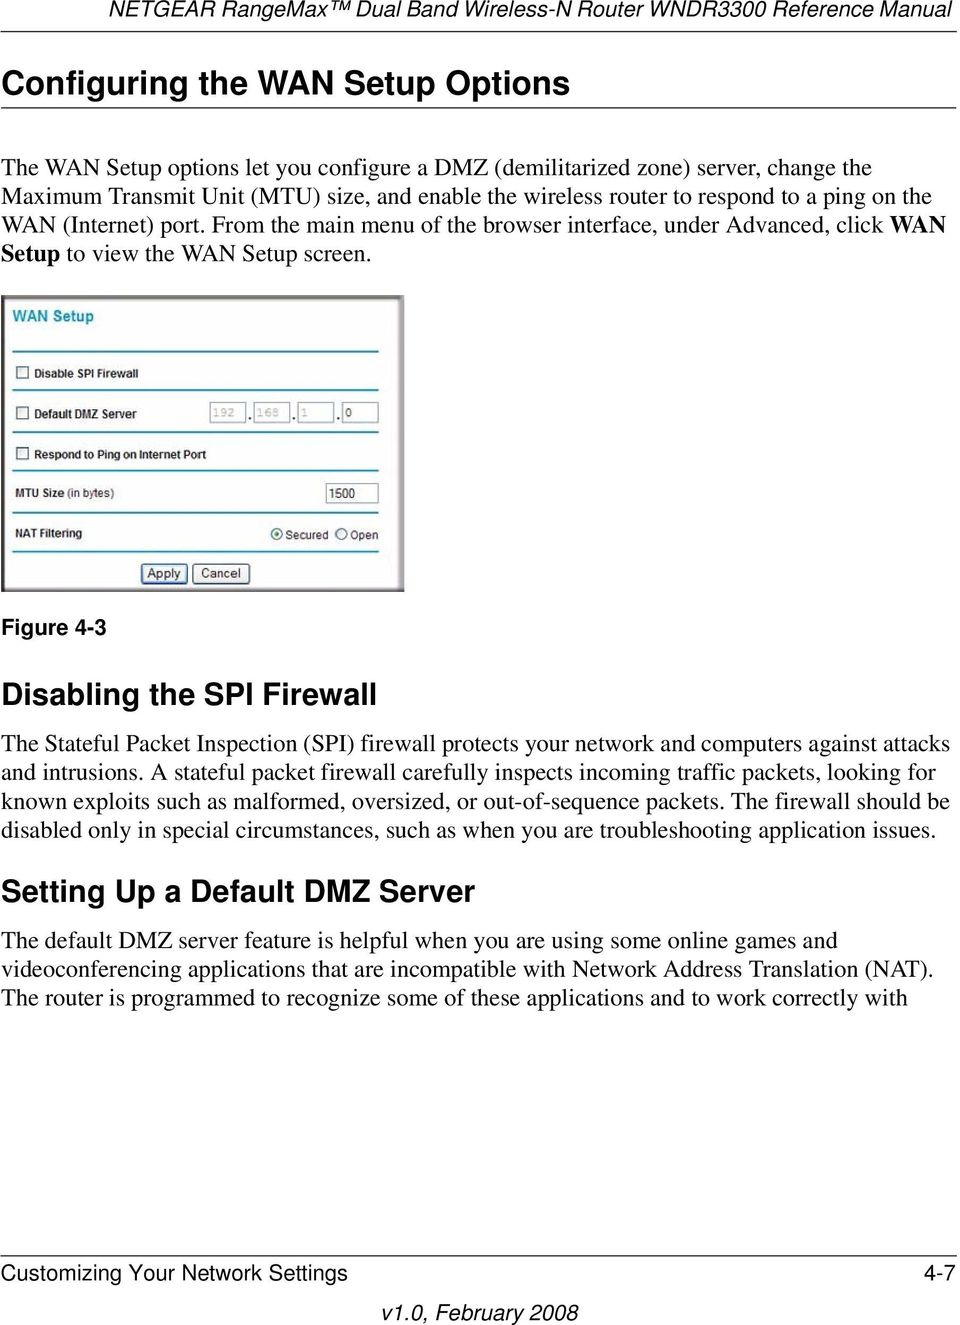 Figure 4-3 Disabling the SPI Firewall The Stateful Packet Inspection (SPI) firewall protects your network and computers against attacks and intrusions.